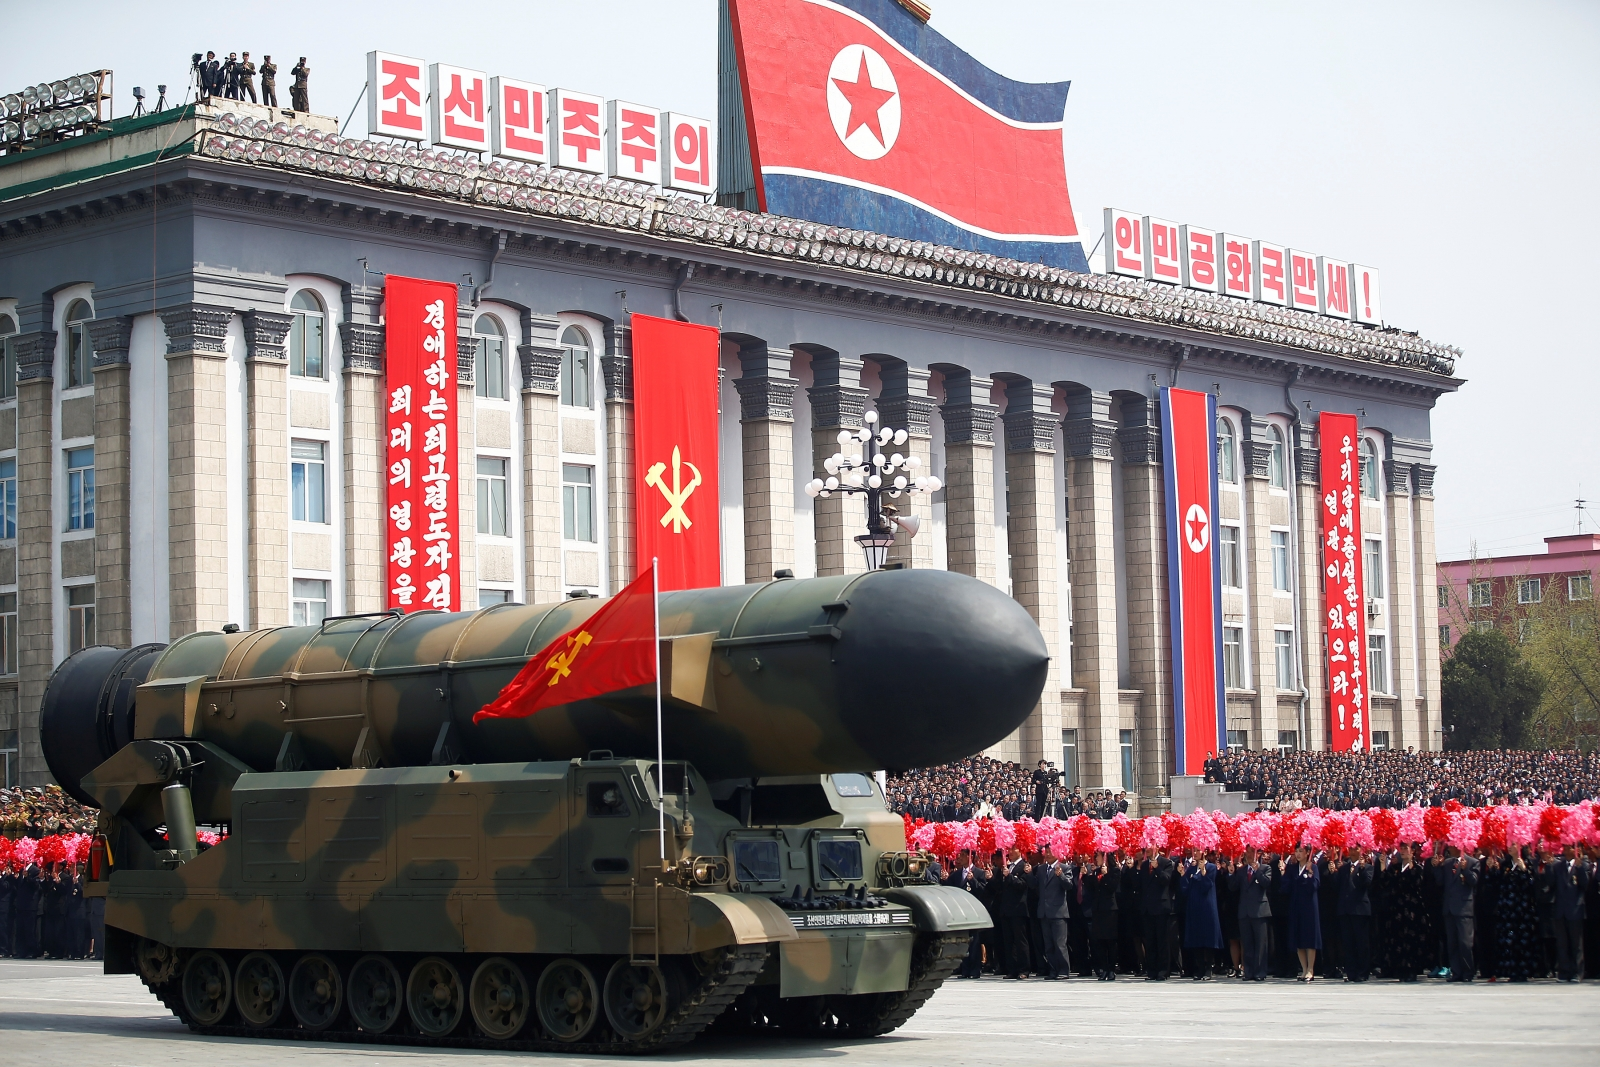 North Korea's latest missile warhead may have been developed long ago